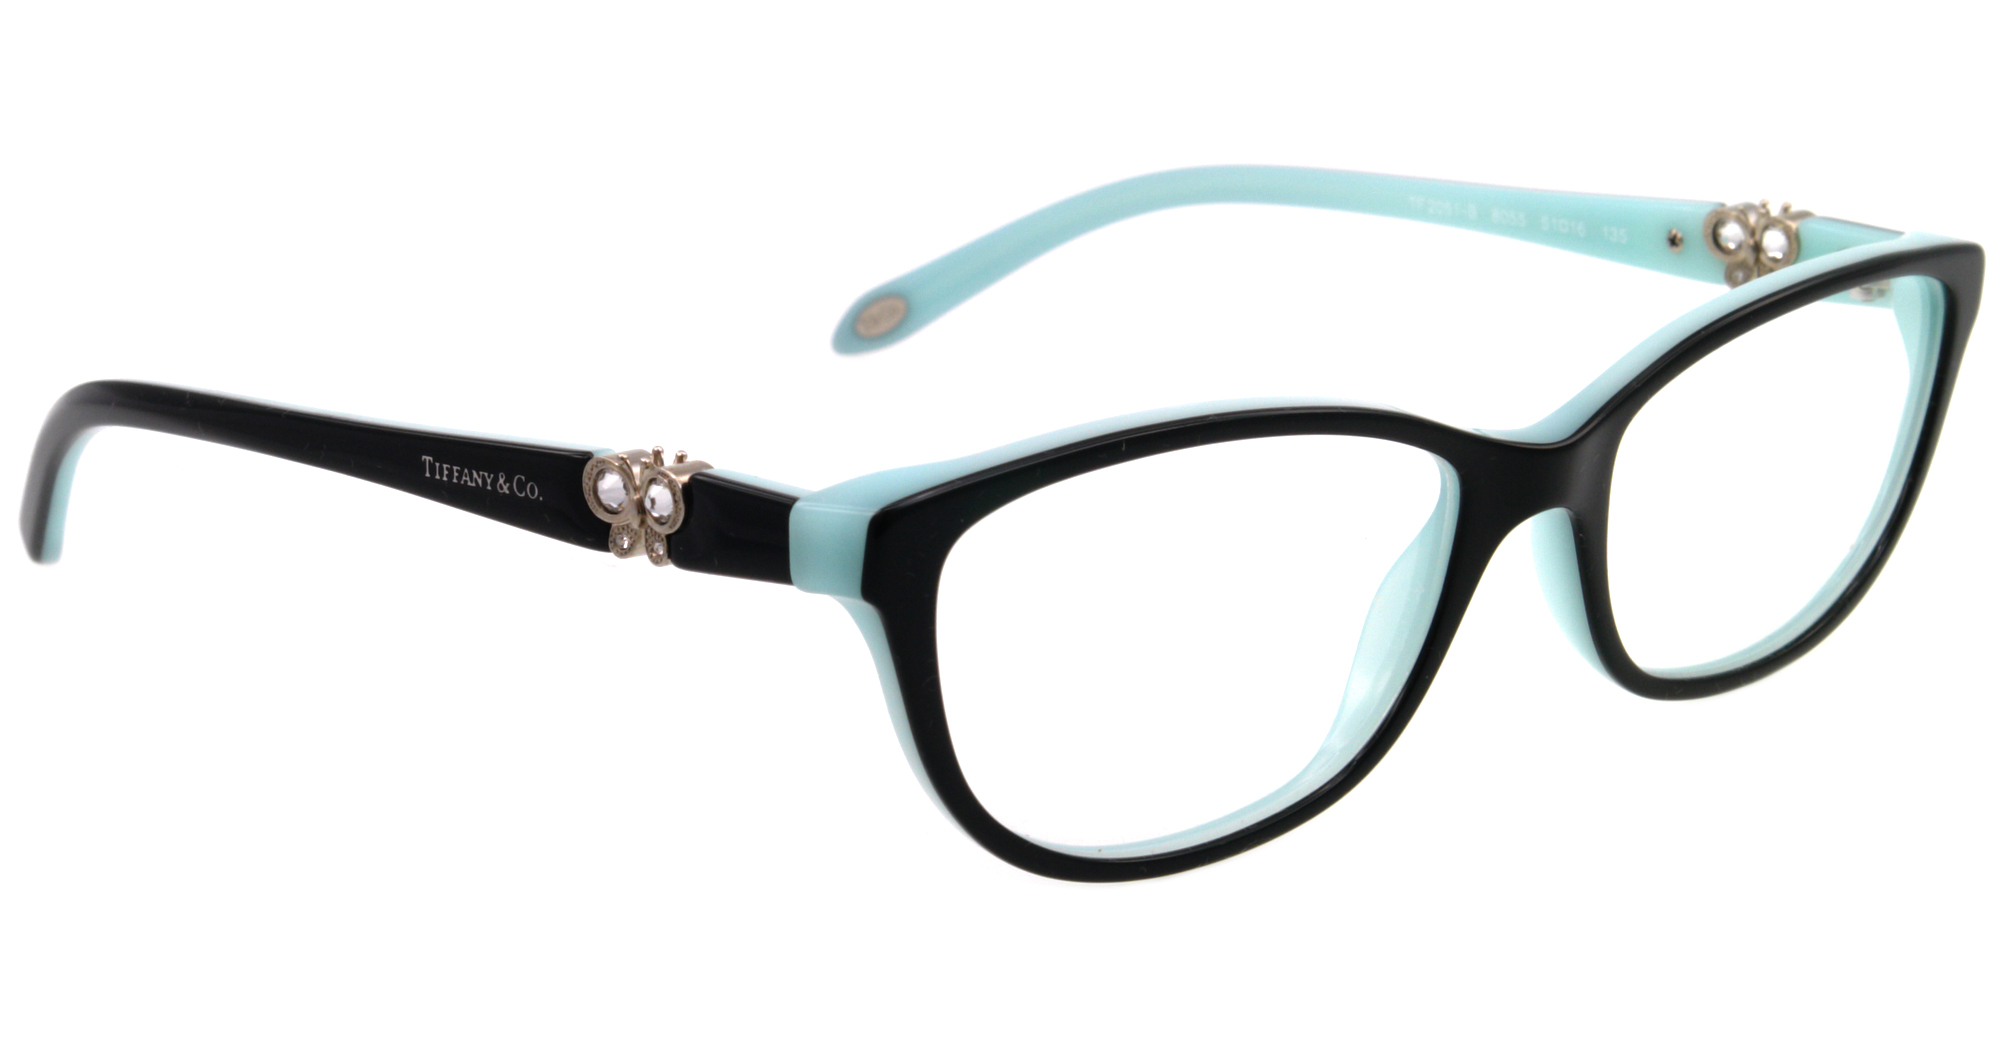 Peepers Family Eyecare | Experience The Difference | Tiffany & Co.